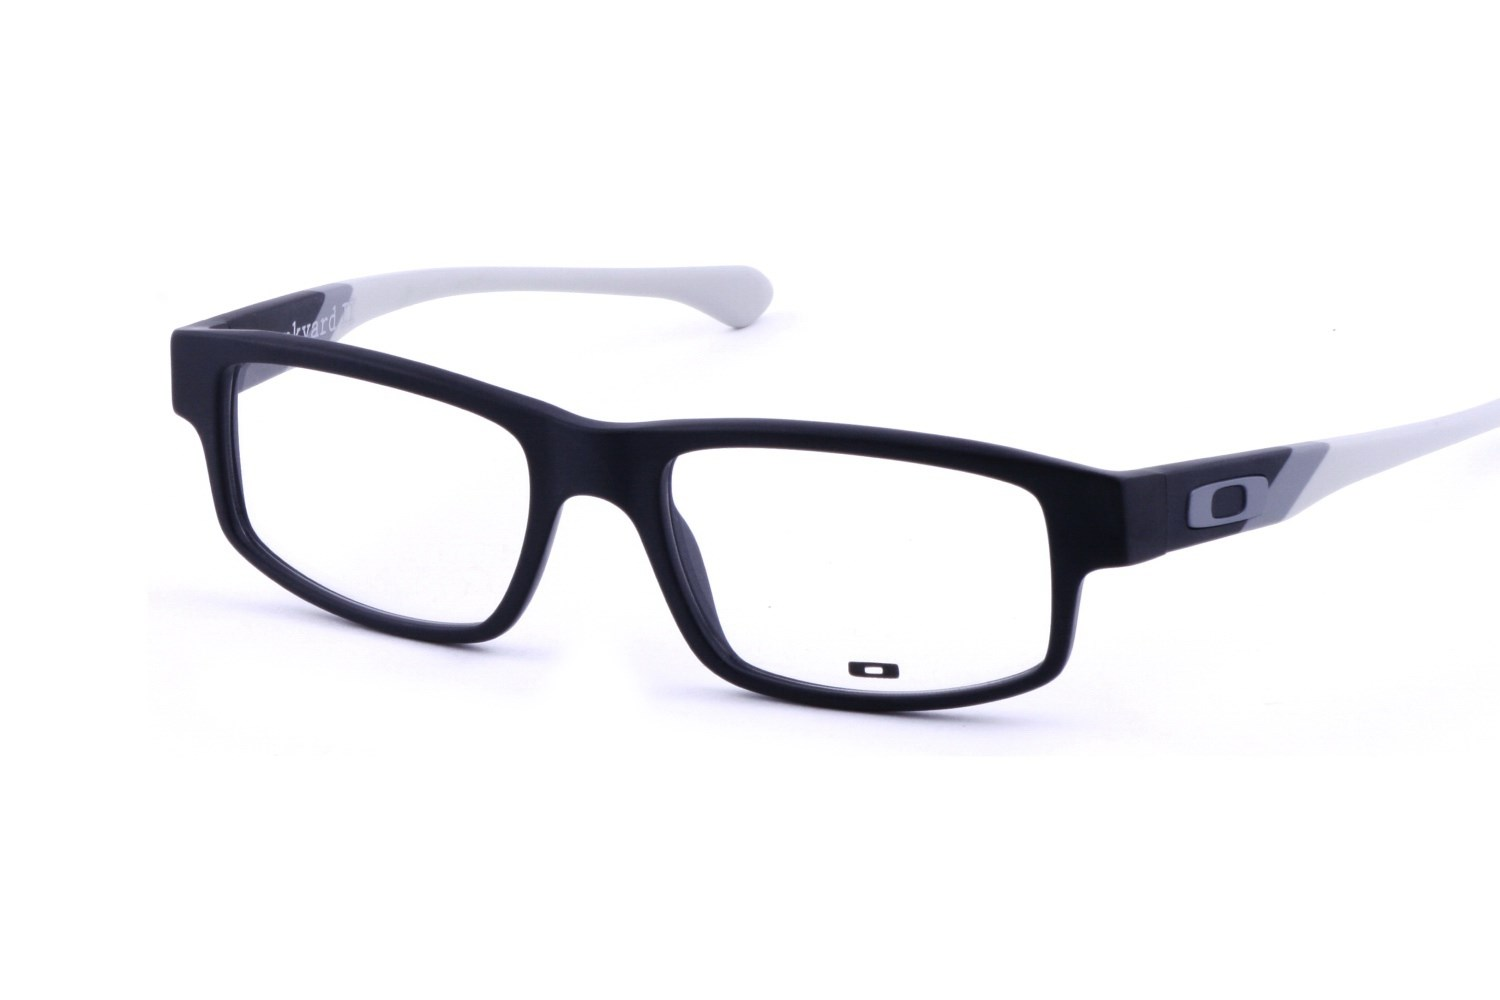 Eyeglass Frame Oakley : Oakley Junkyard II (53) Prescription Eyeglasses ...